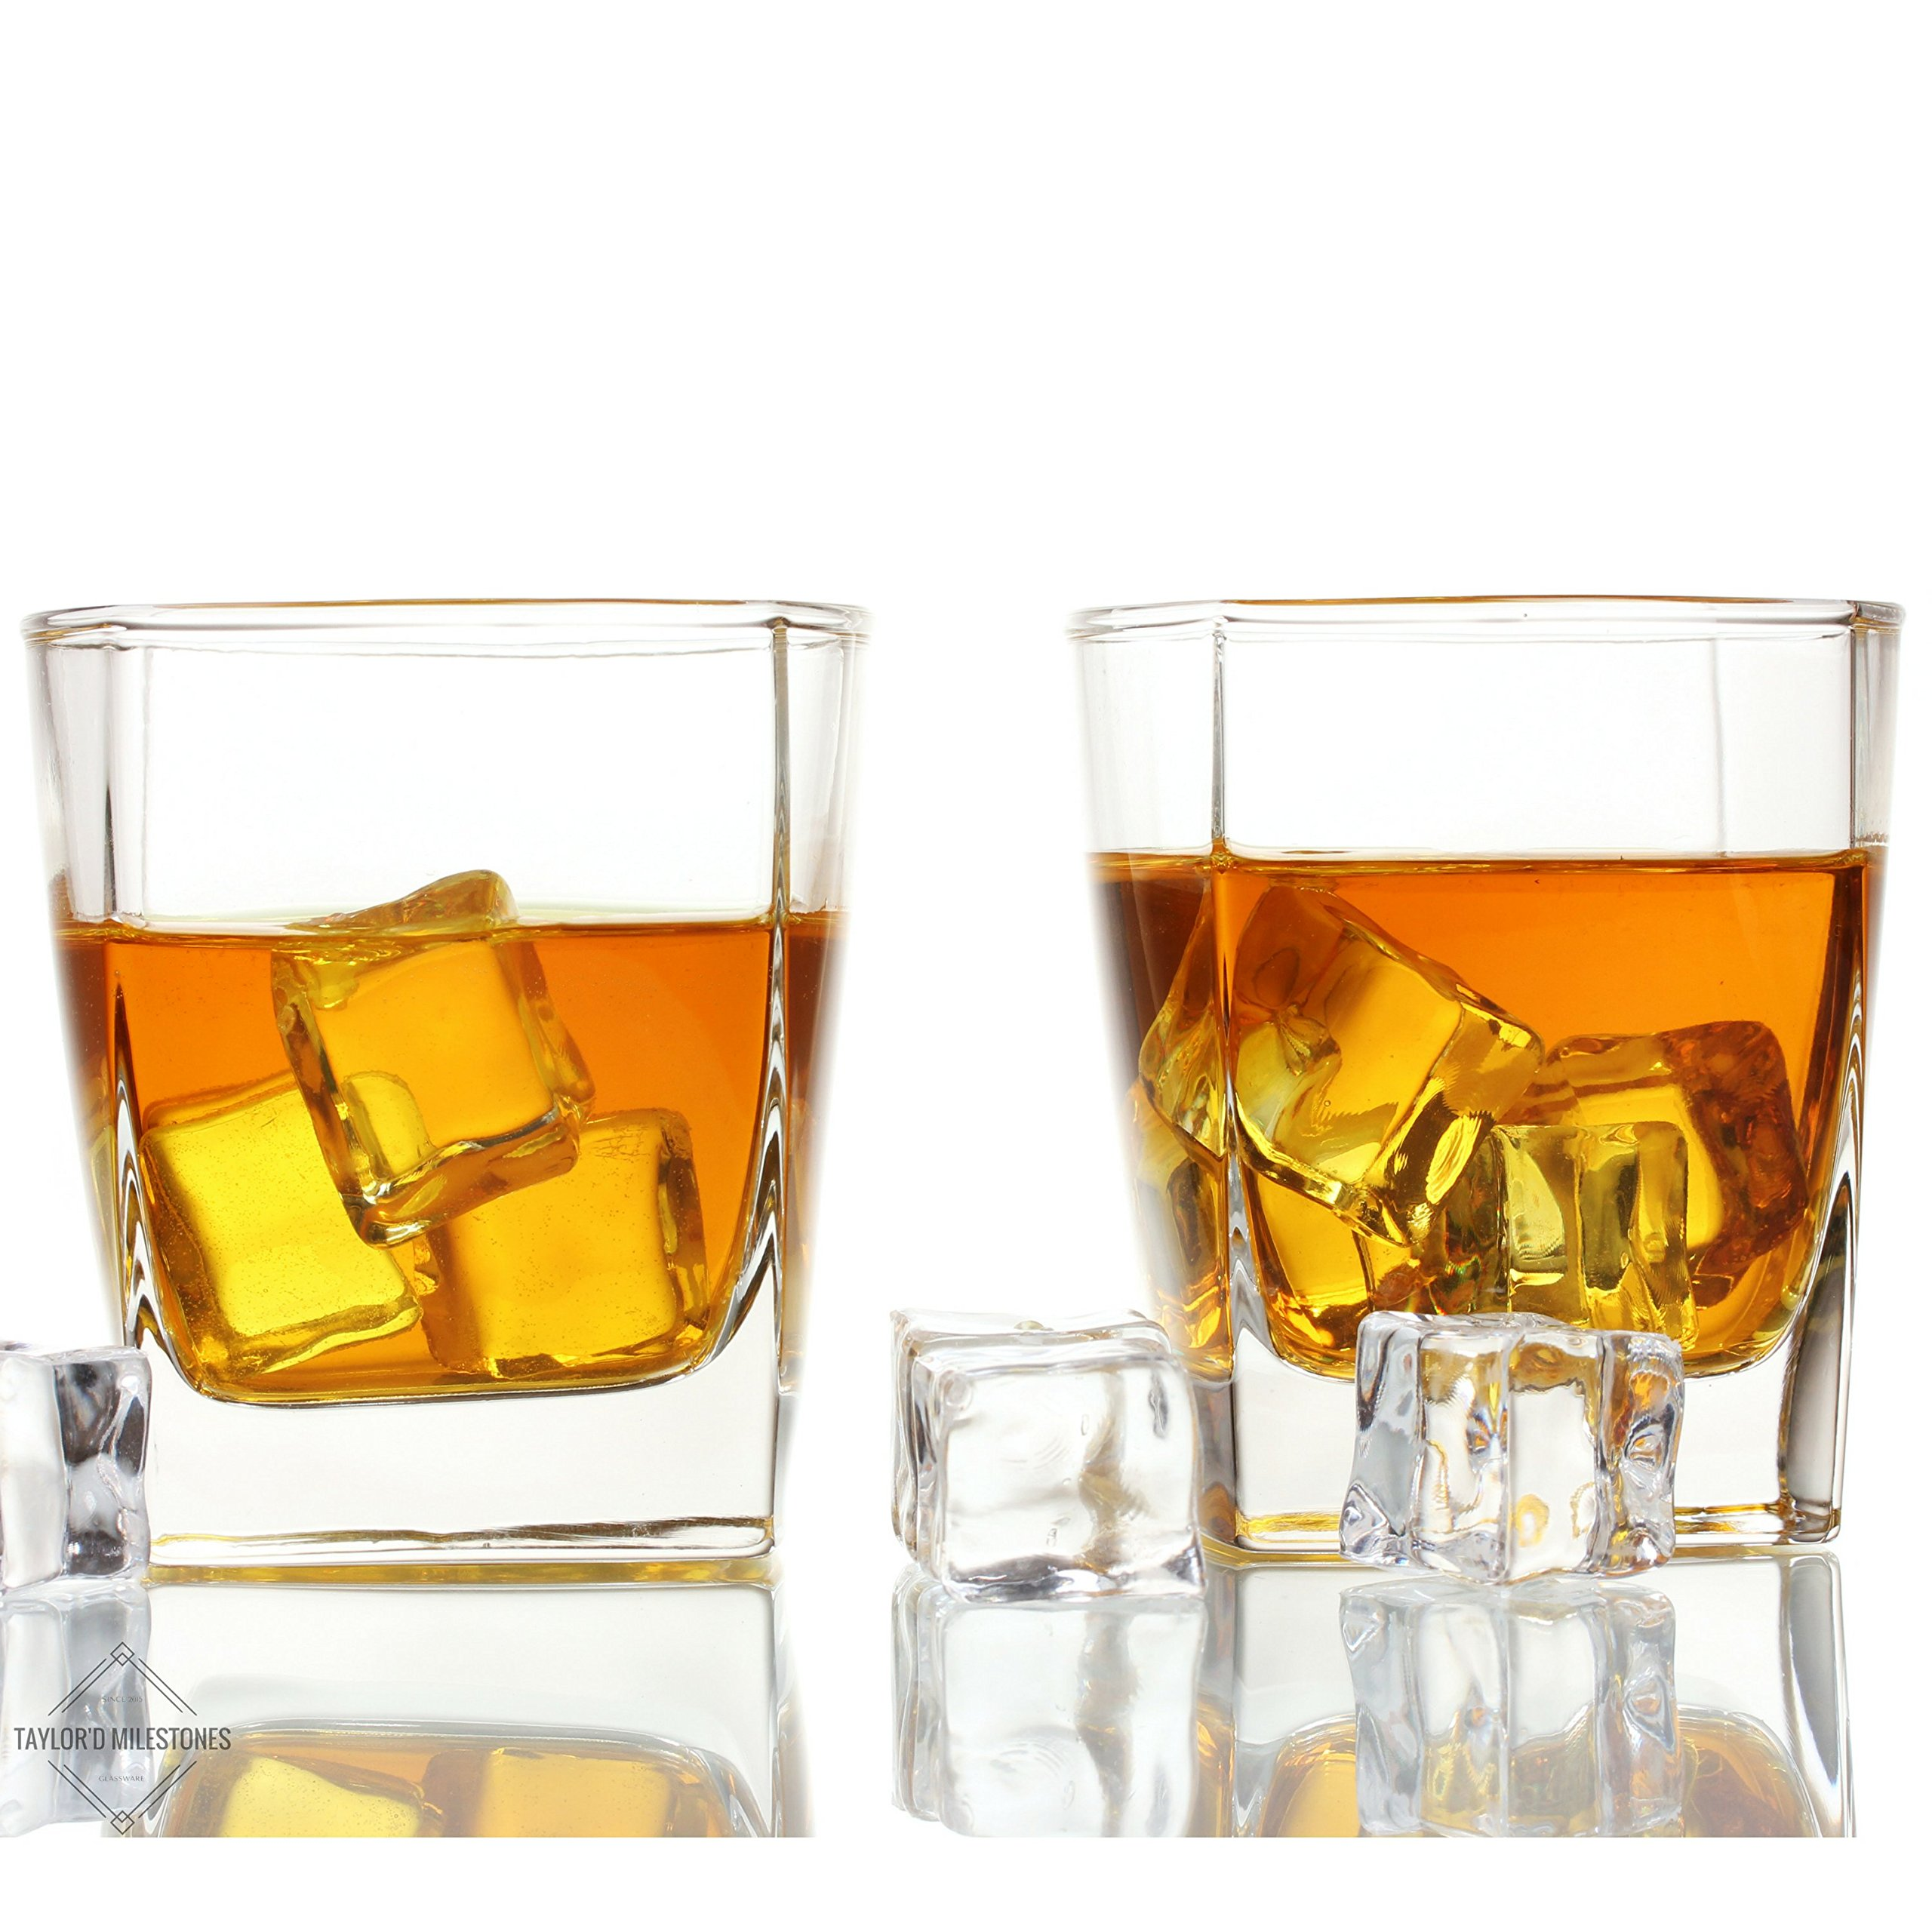 Whiskey Glass by Taylor'd Milestones - 10.5 oz Scotch Glasses. Gift Set Includes 2 Old Fashioned Tumblers with Square Base. Diamond Etched, Rocks Glassware for Bourbon, Home Bar & Everyday Use. by Taylor'd Milestones Glassware